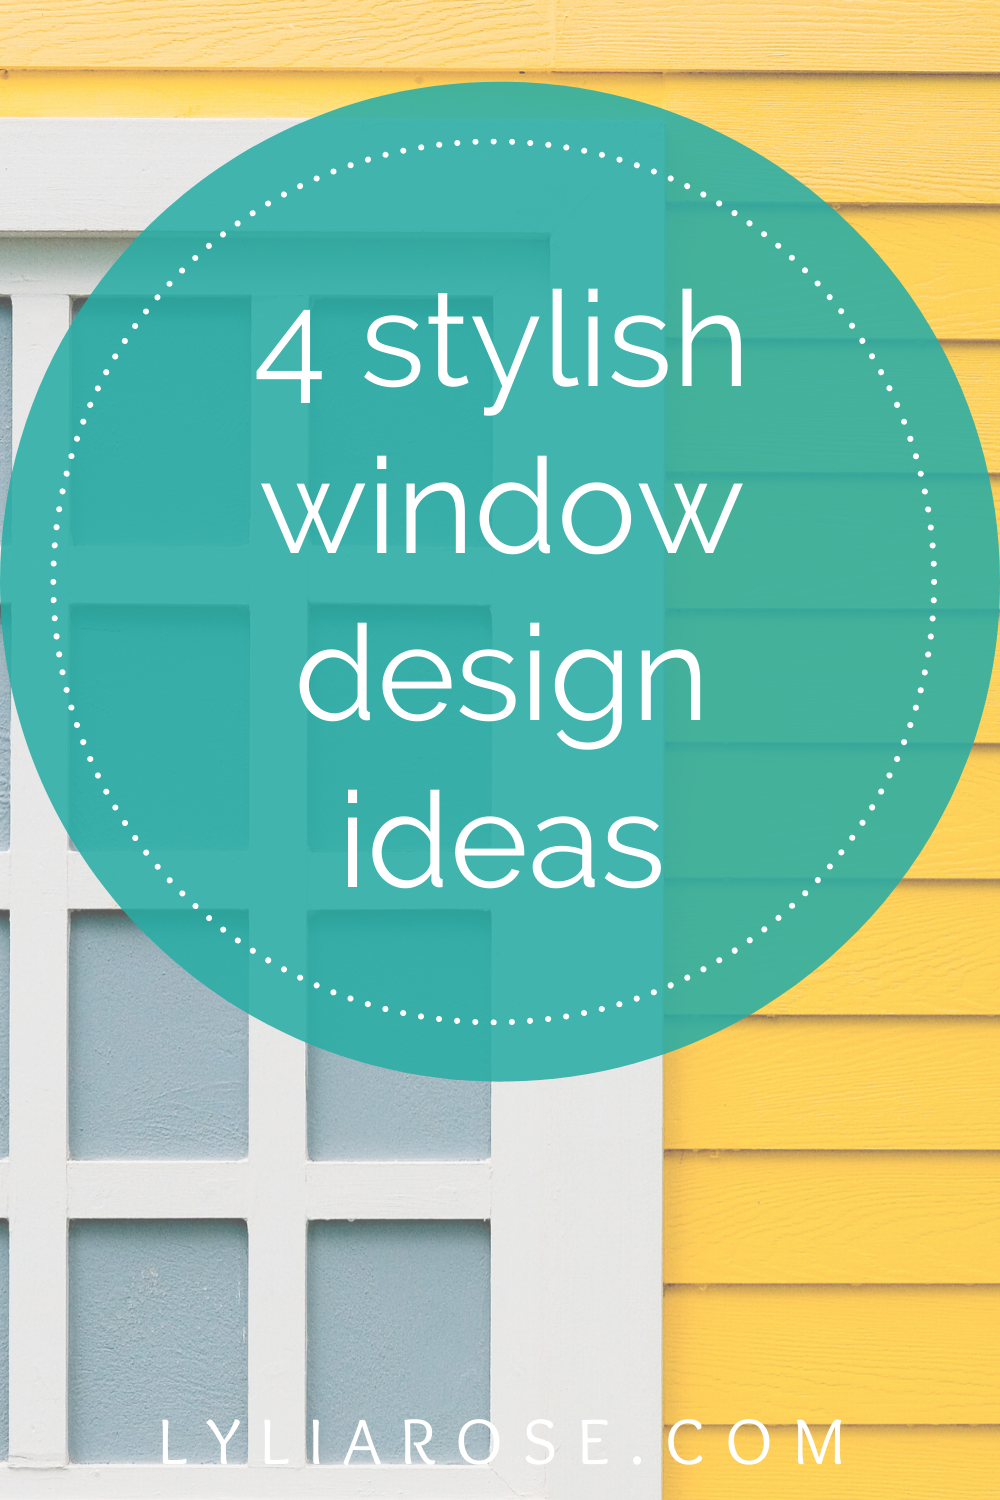 4 stylish window design ideas